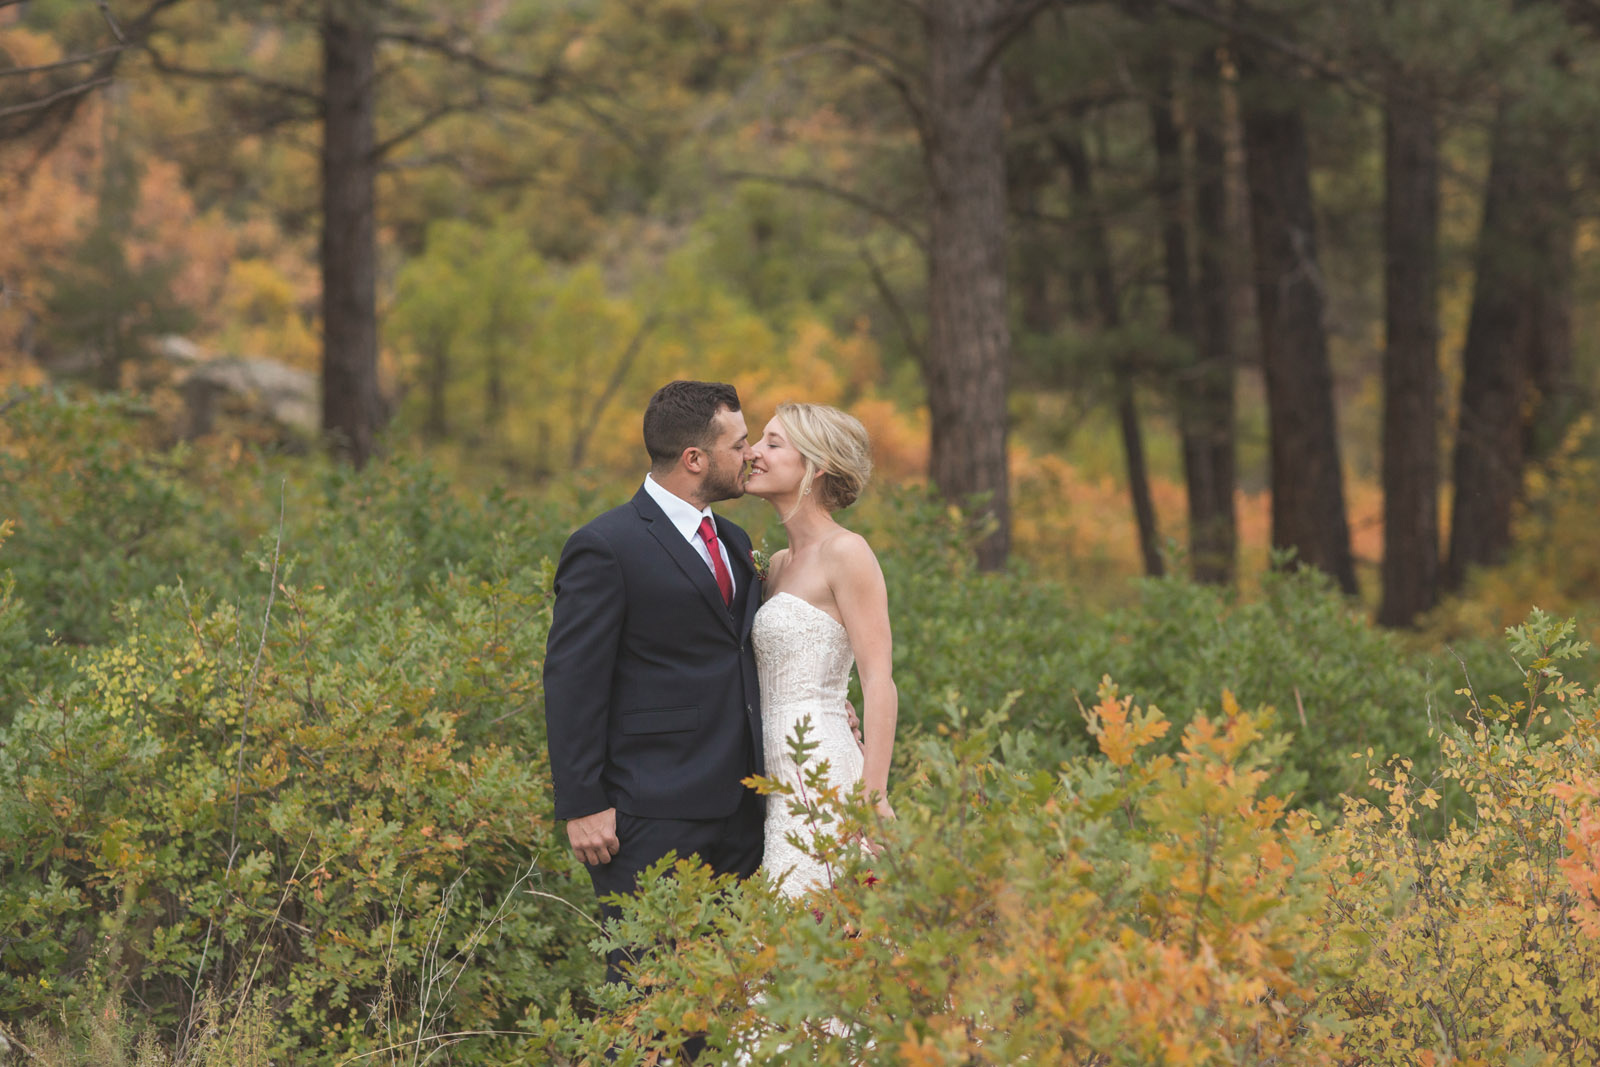 140-beautiful-bride-and-groom-photojournalist-portraits-at-elopement-wedding-in-durango-colorado-forest